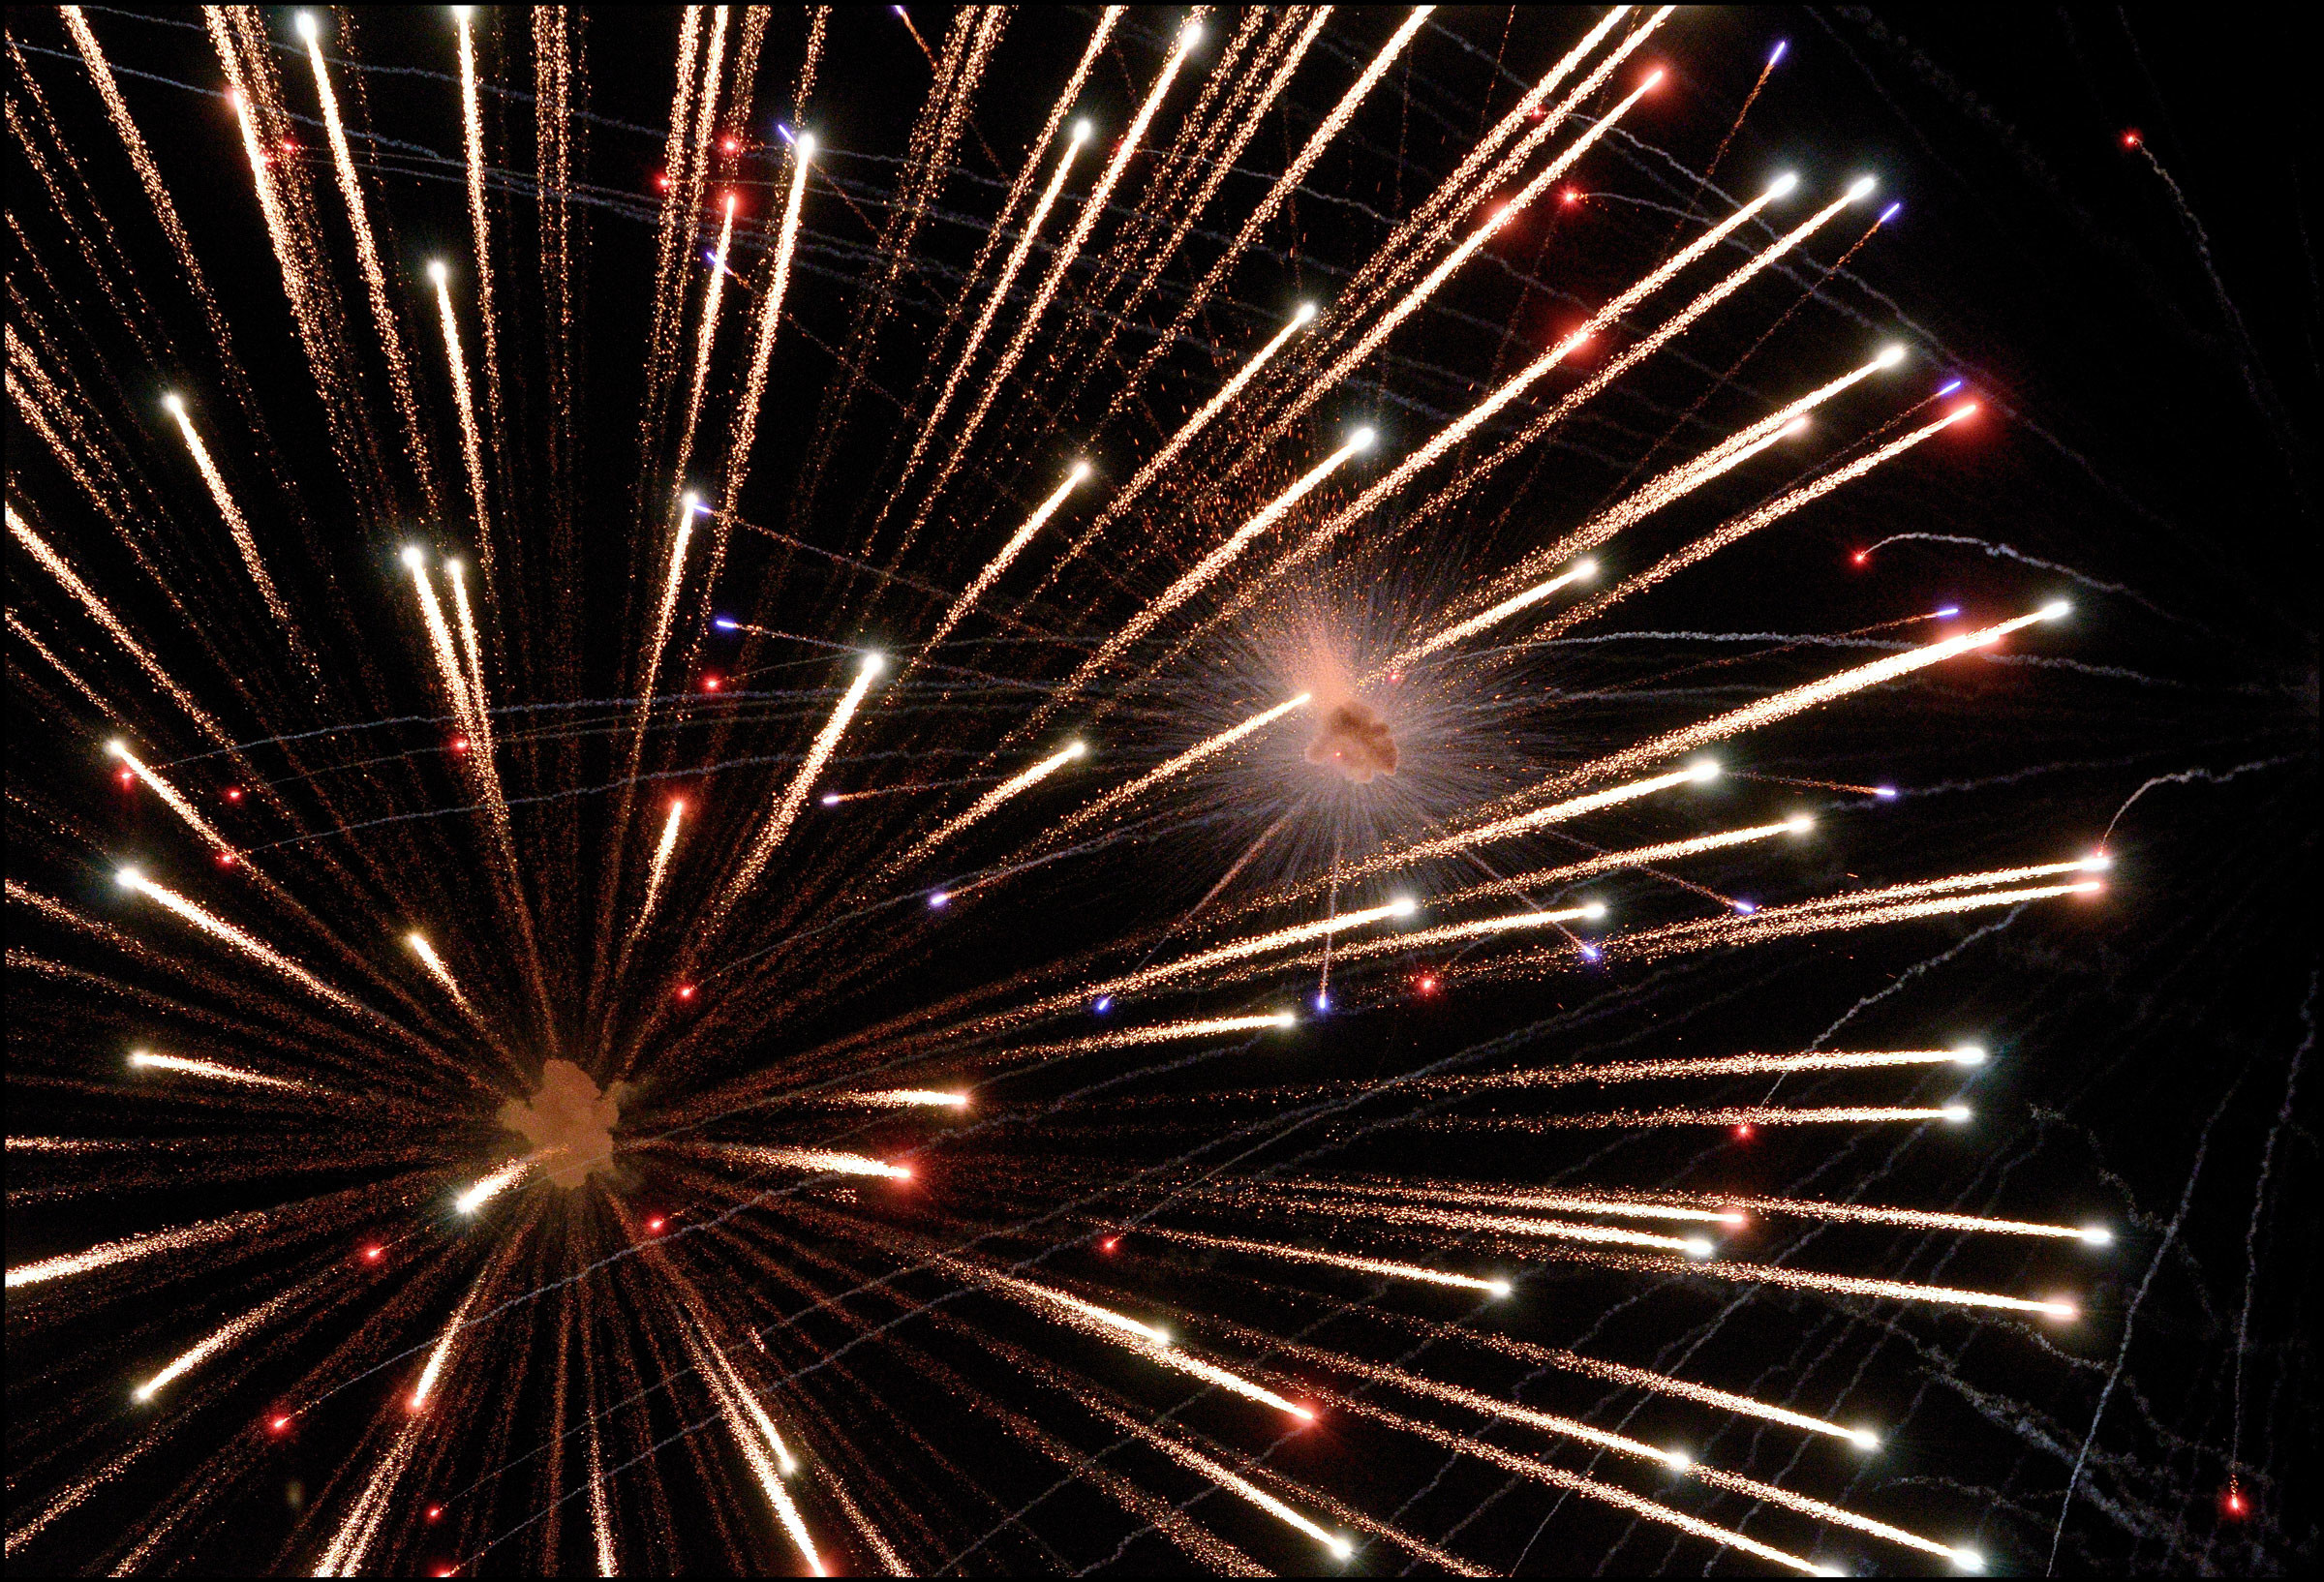 2400x1634, Happy 4th Of July 2014 Fireworks Pictures - Fireworks Background Hd - HD Wallpaper